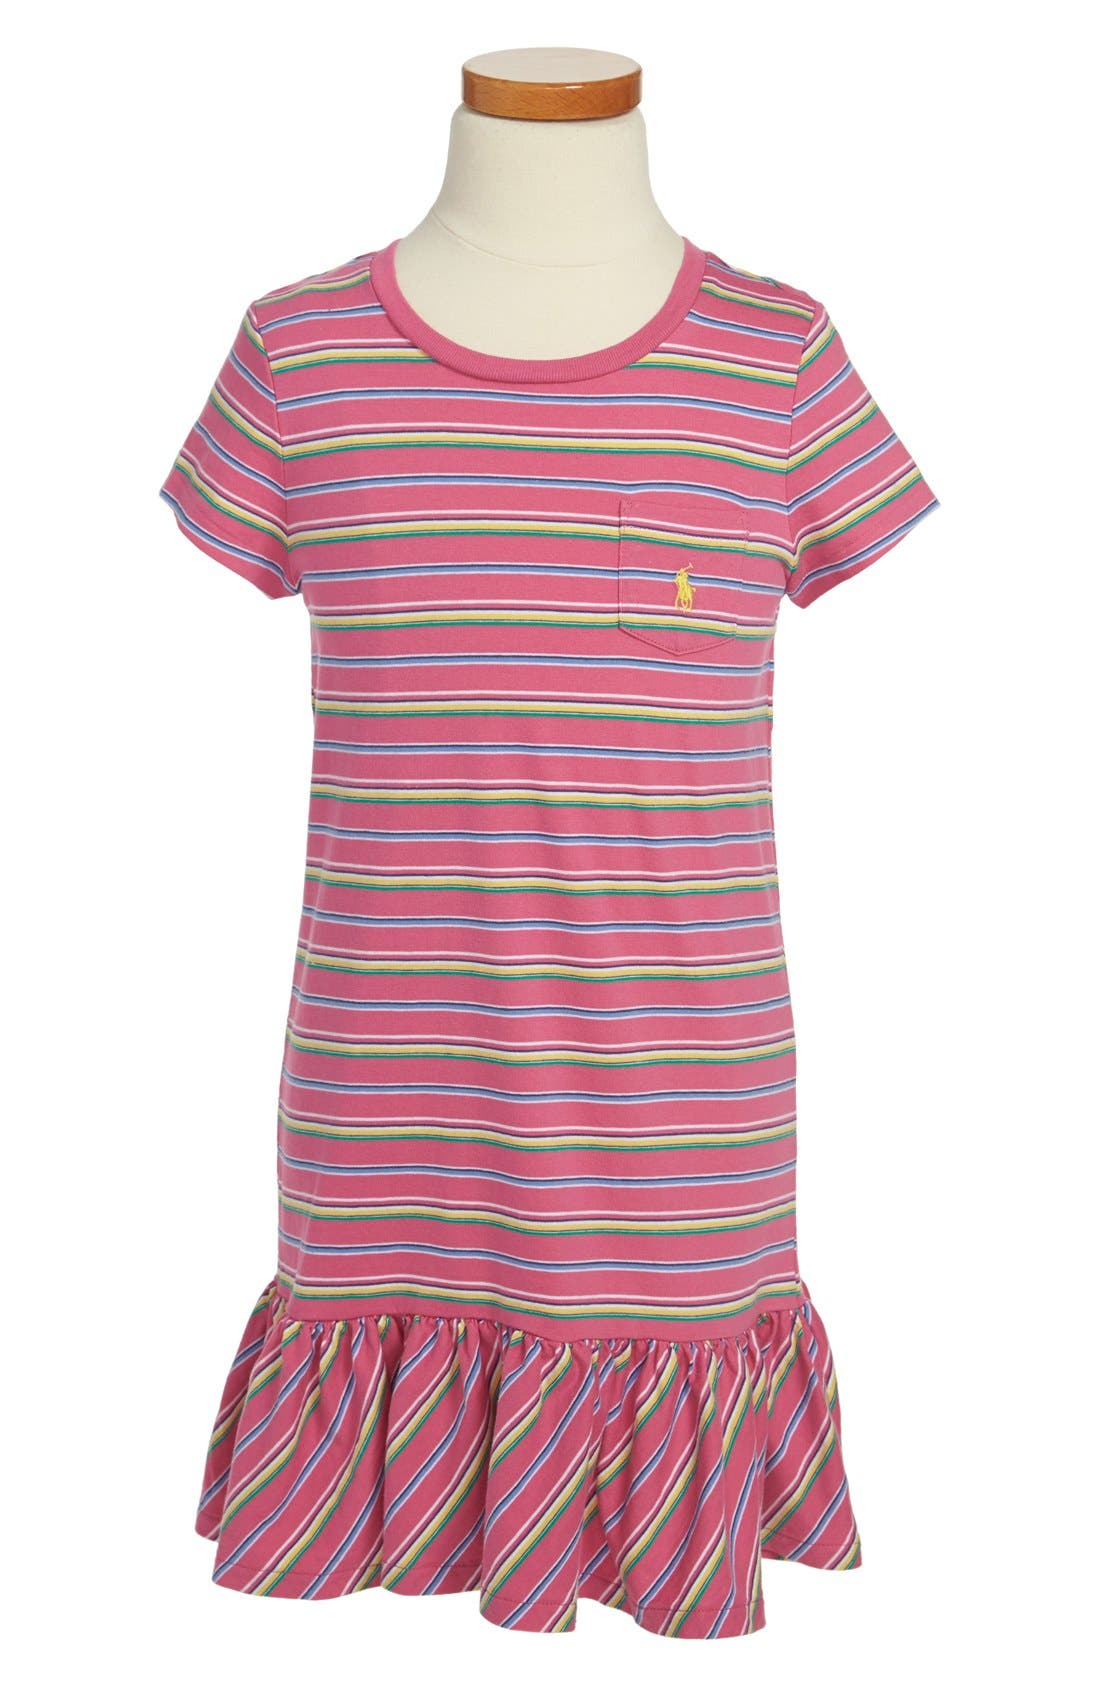 Main Image - Ralph Lauren Stripe T-Shirt Dress (Little Girls)